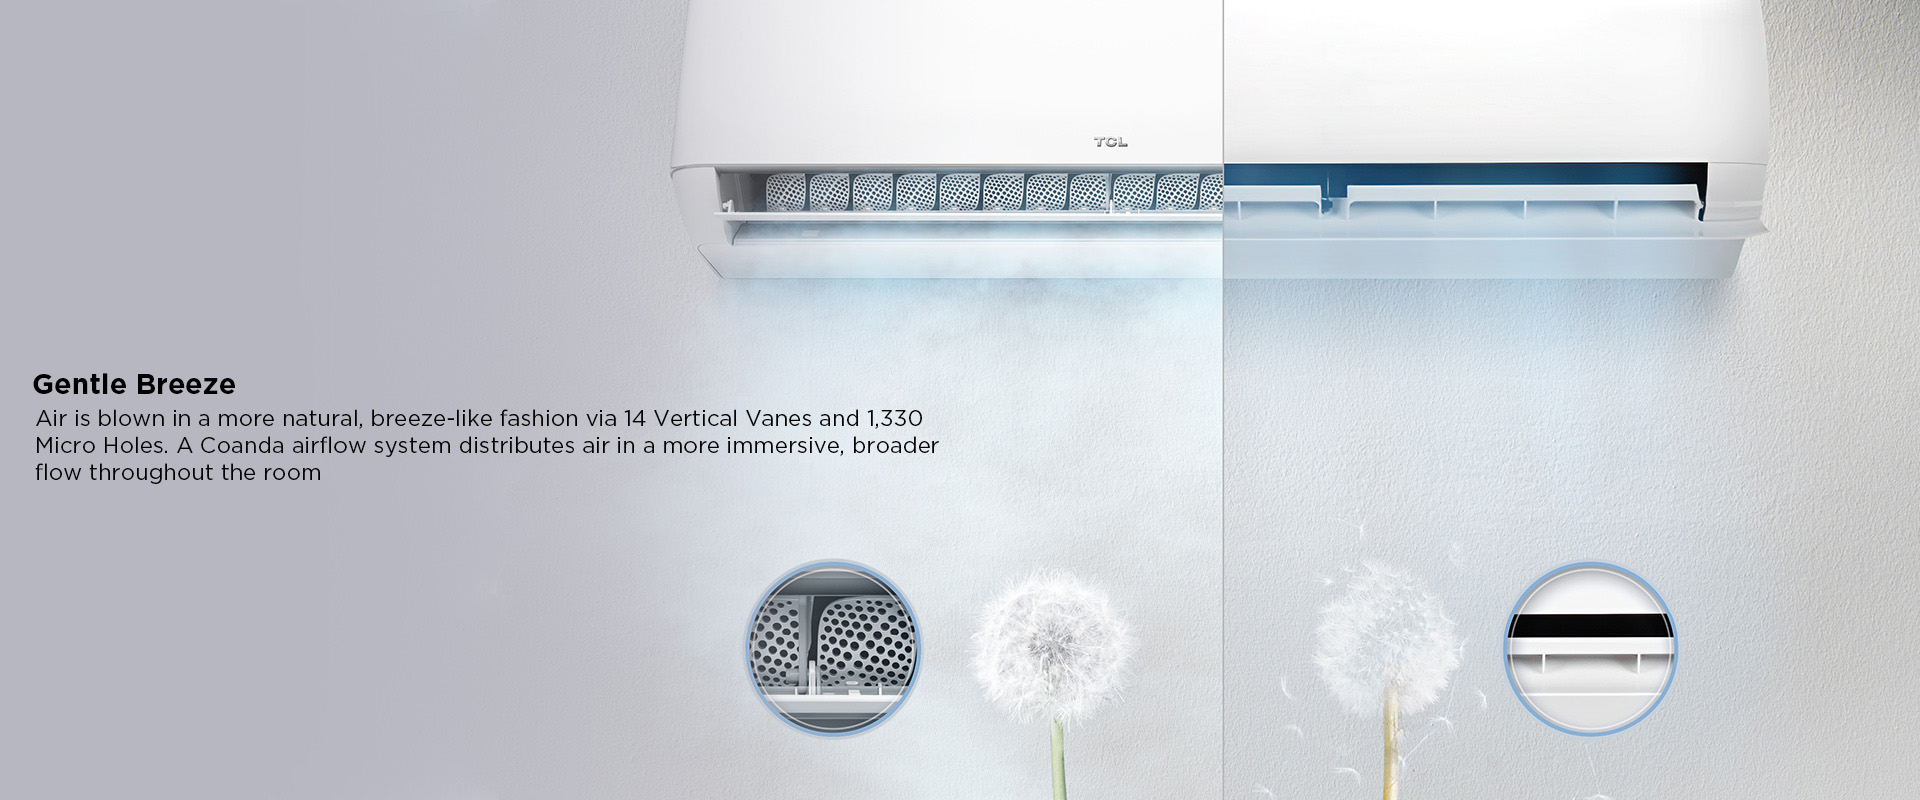 Gentle Breeze - Air is blown in a more natural, breeze-like fashion via 14 Vertical Vanes and 1,330 Micro Holes. A Coanda airflow system distributes air in a more immersive, broader flow throughout the room